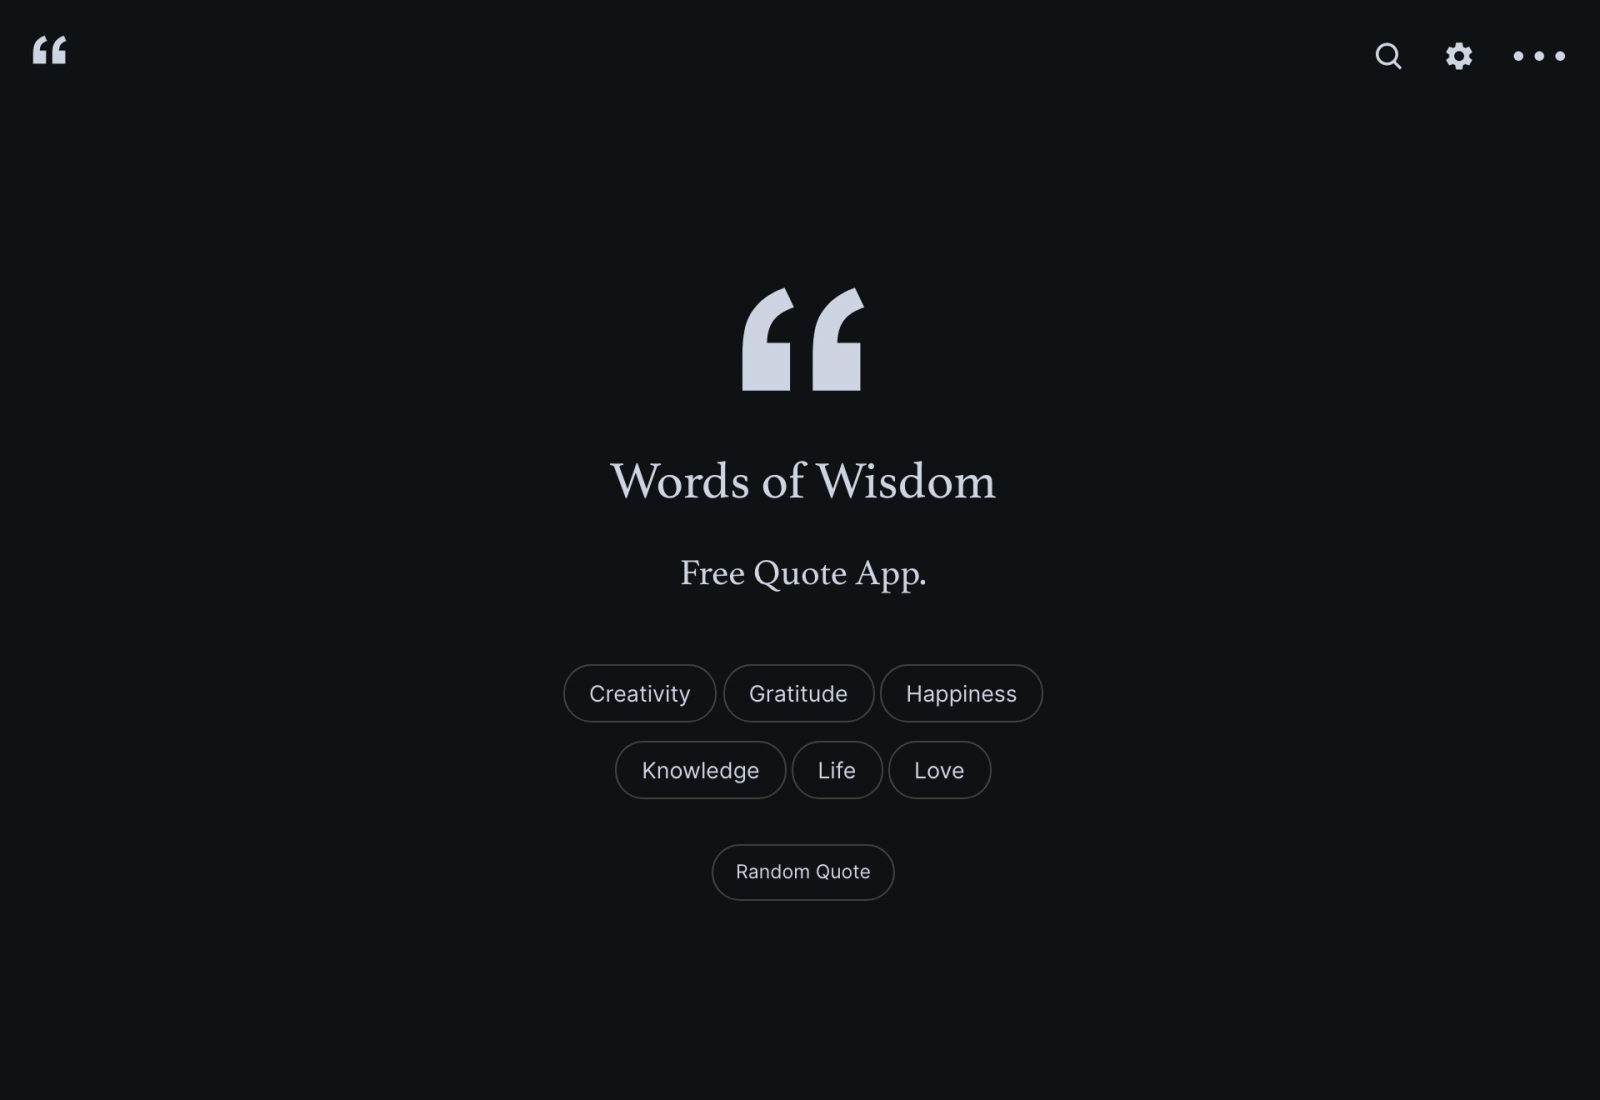 Words of Wisdom - Example Quote Categories